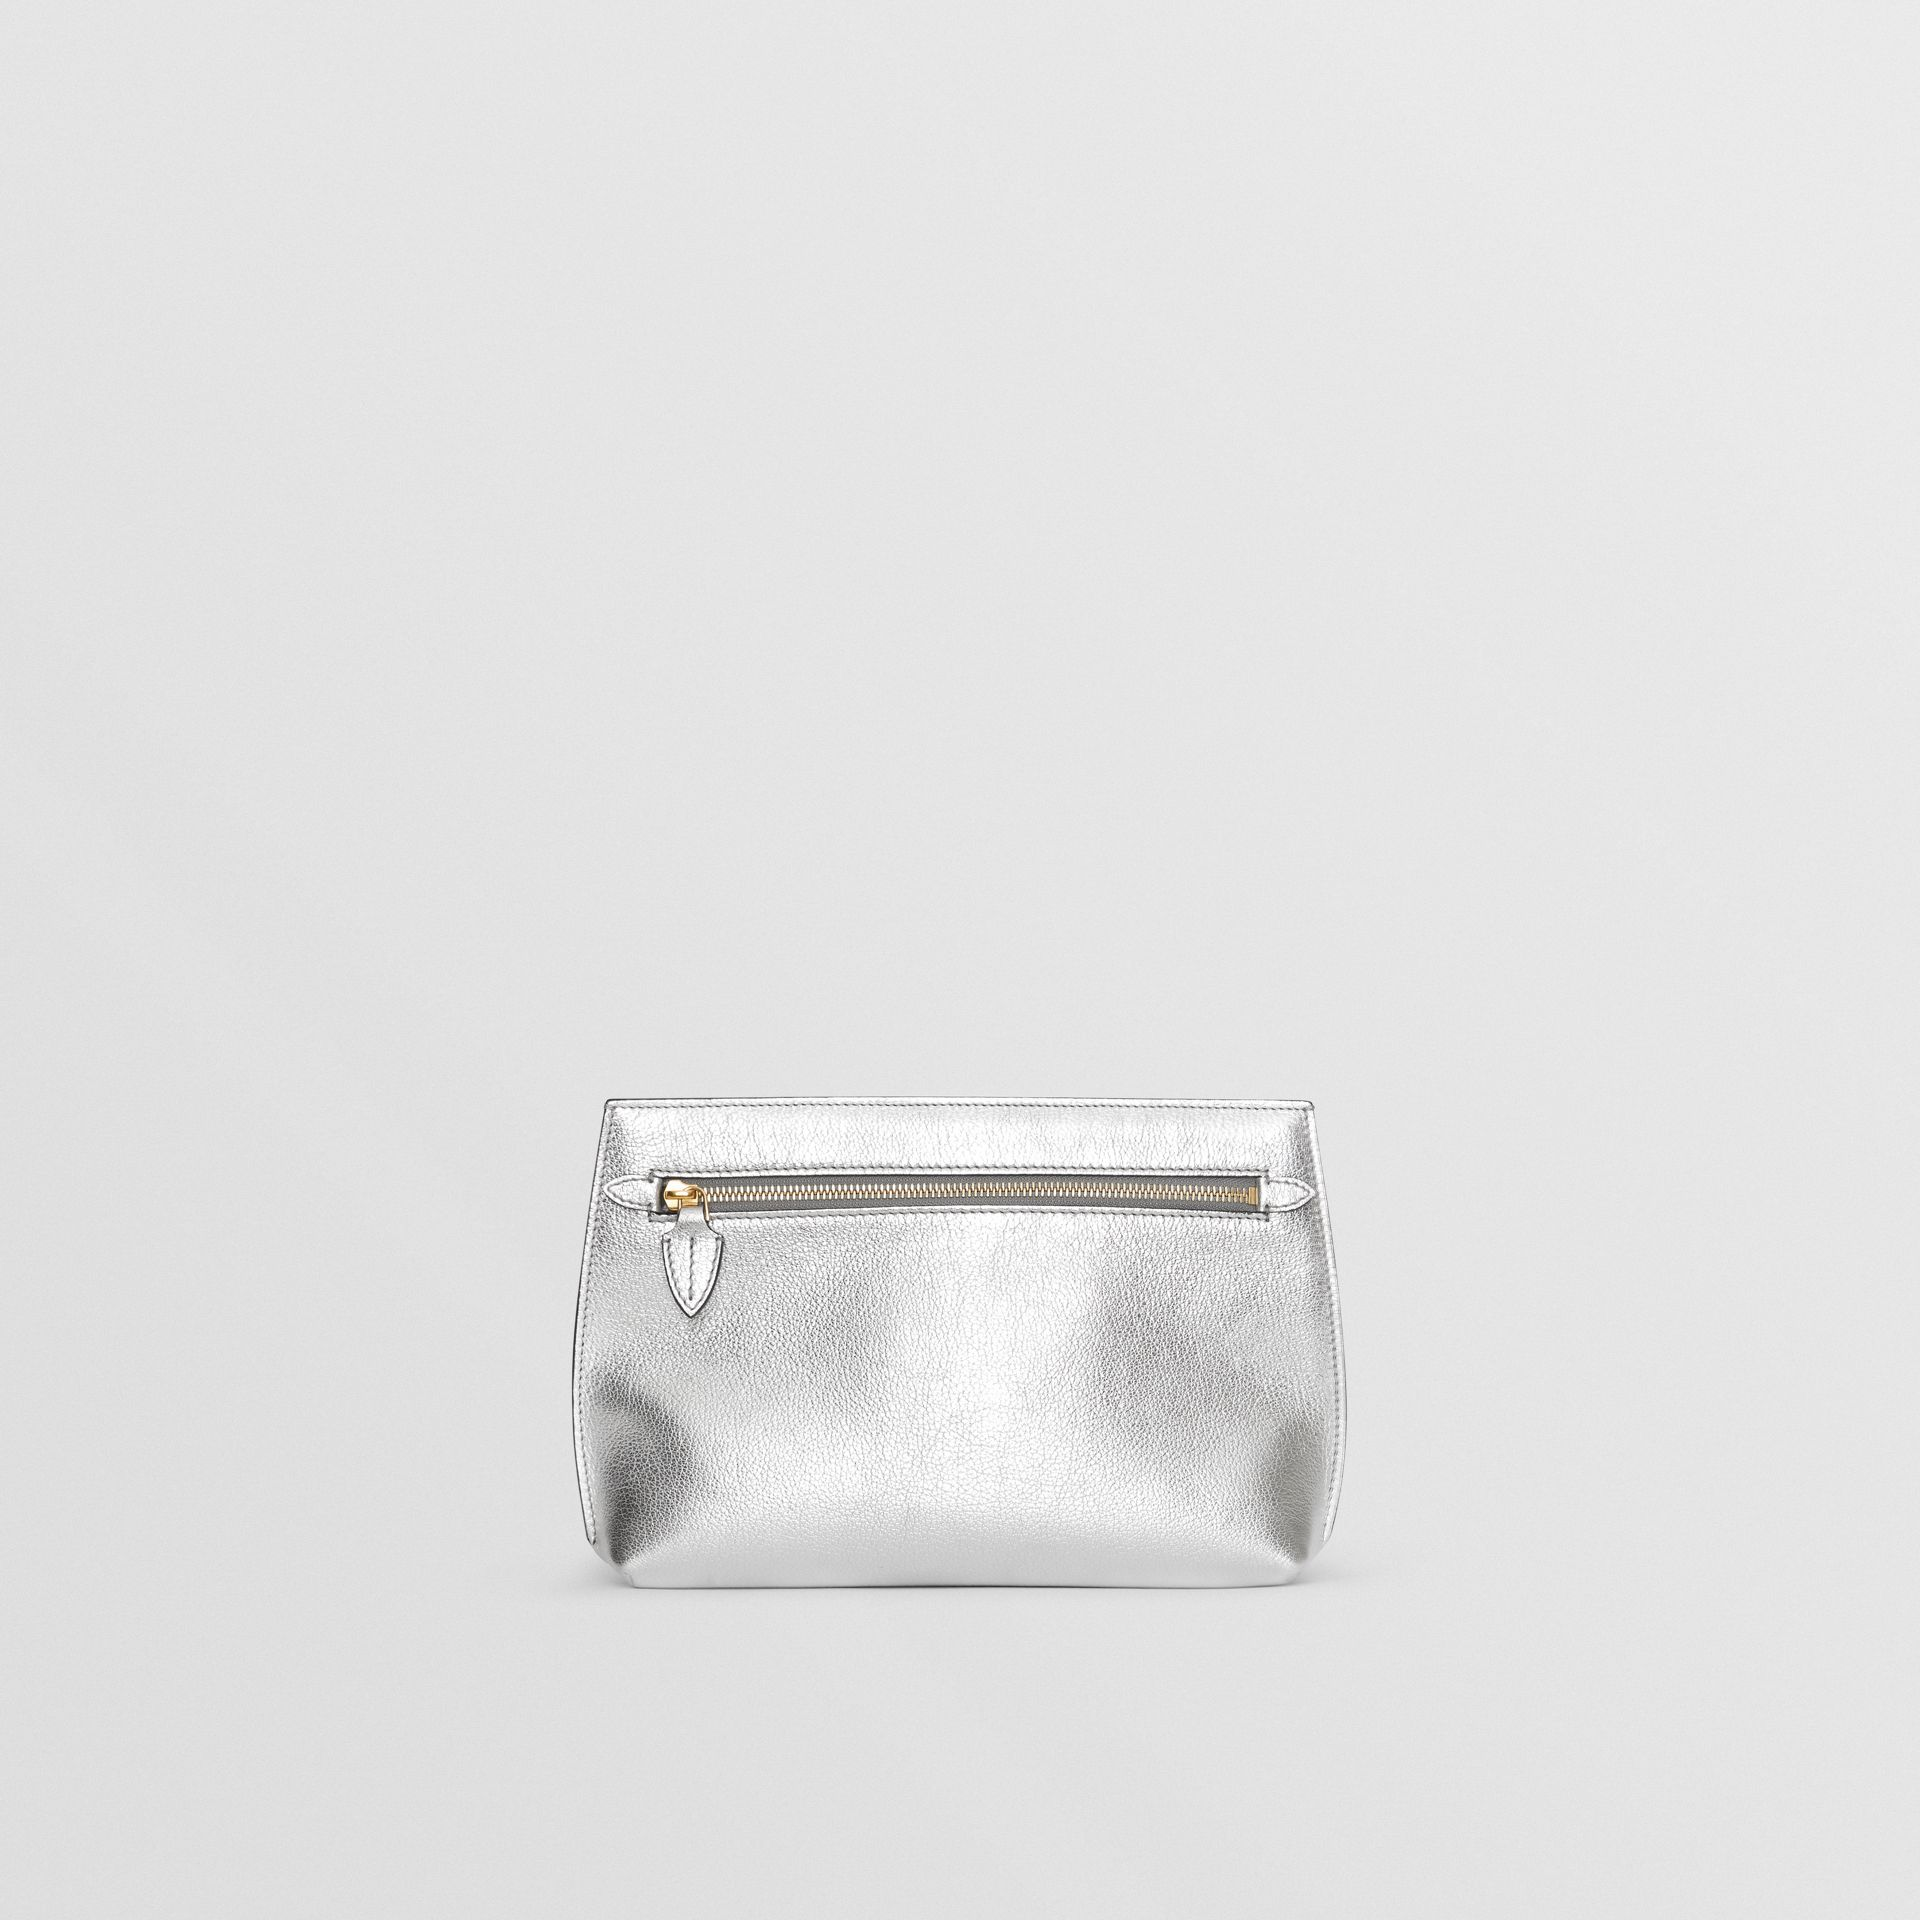 Metallic Leather Wristlet Clutch in Silver - Women | Burberry Singapore - gallery image 7